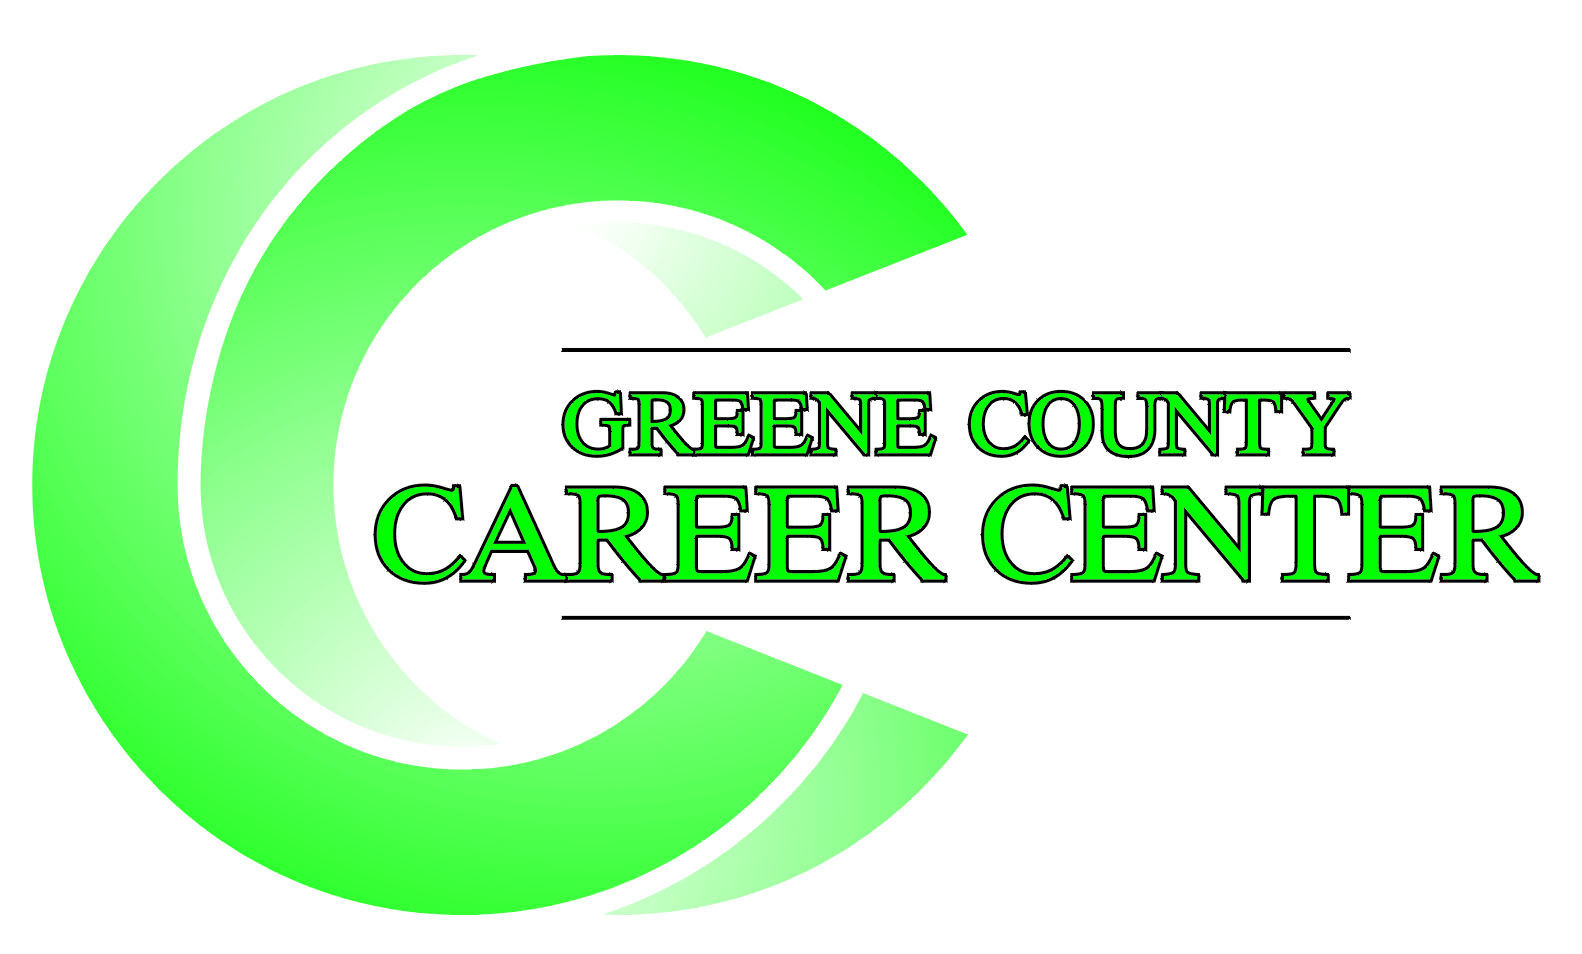 Greene County Career Center 50th Anniversary Celebration